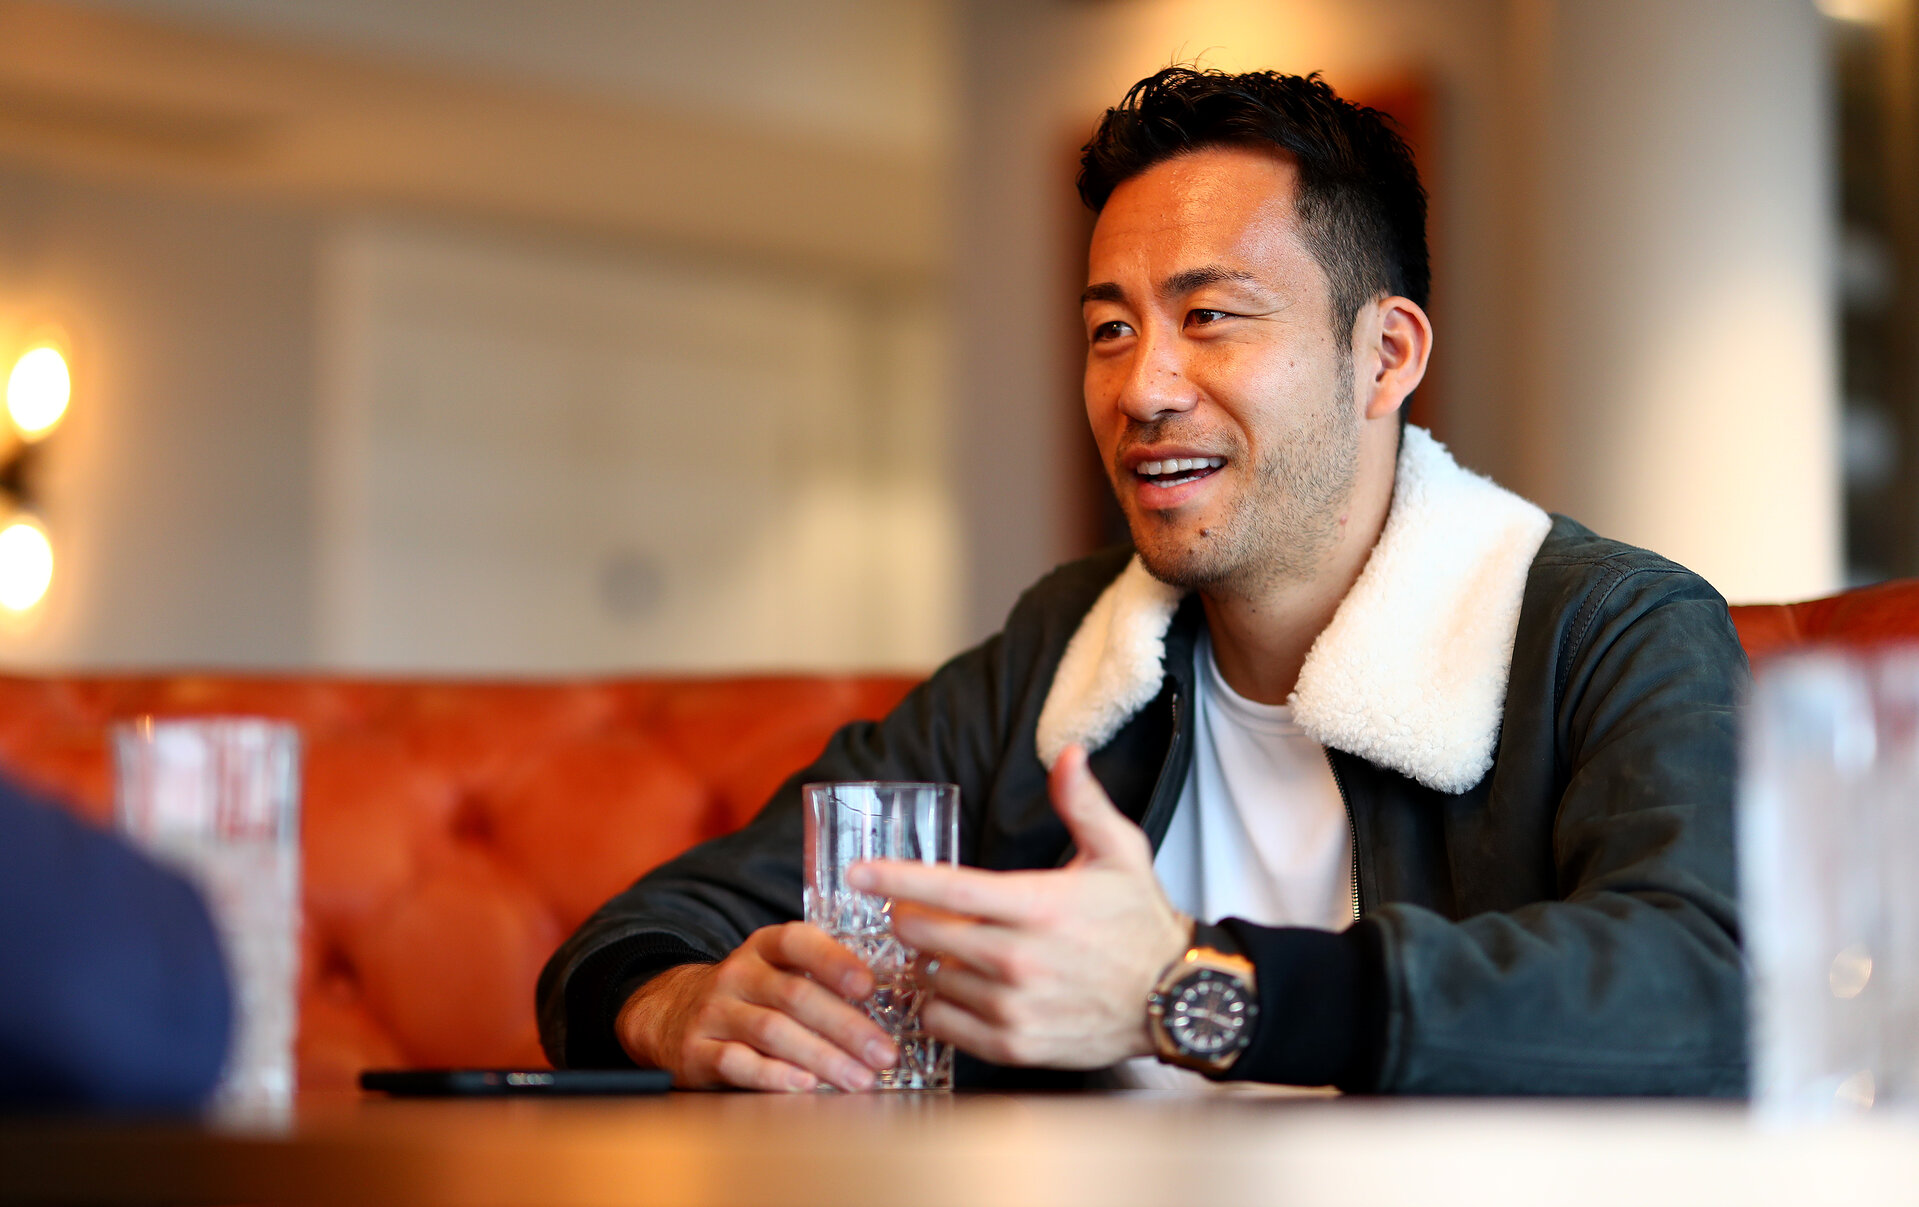 SOUTHAMPTON, ENGLAND - MARCH 19: SouthamptonFC's Maya Yoshida pictured for the club's match day magazine at Southampton Harbour Hotel, on March 19, 2019 in Southampton, England. (Photo by Matt Watson/Southampton FC via Getty Images)